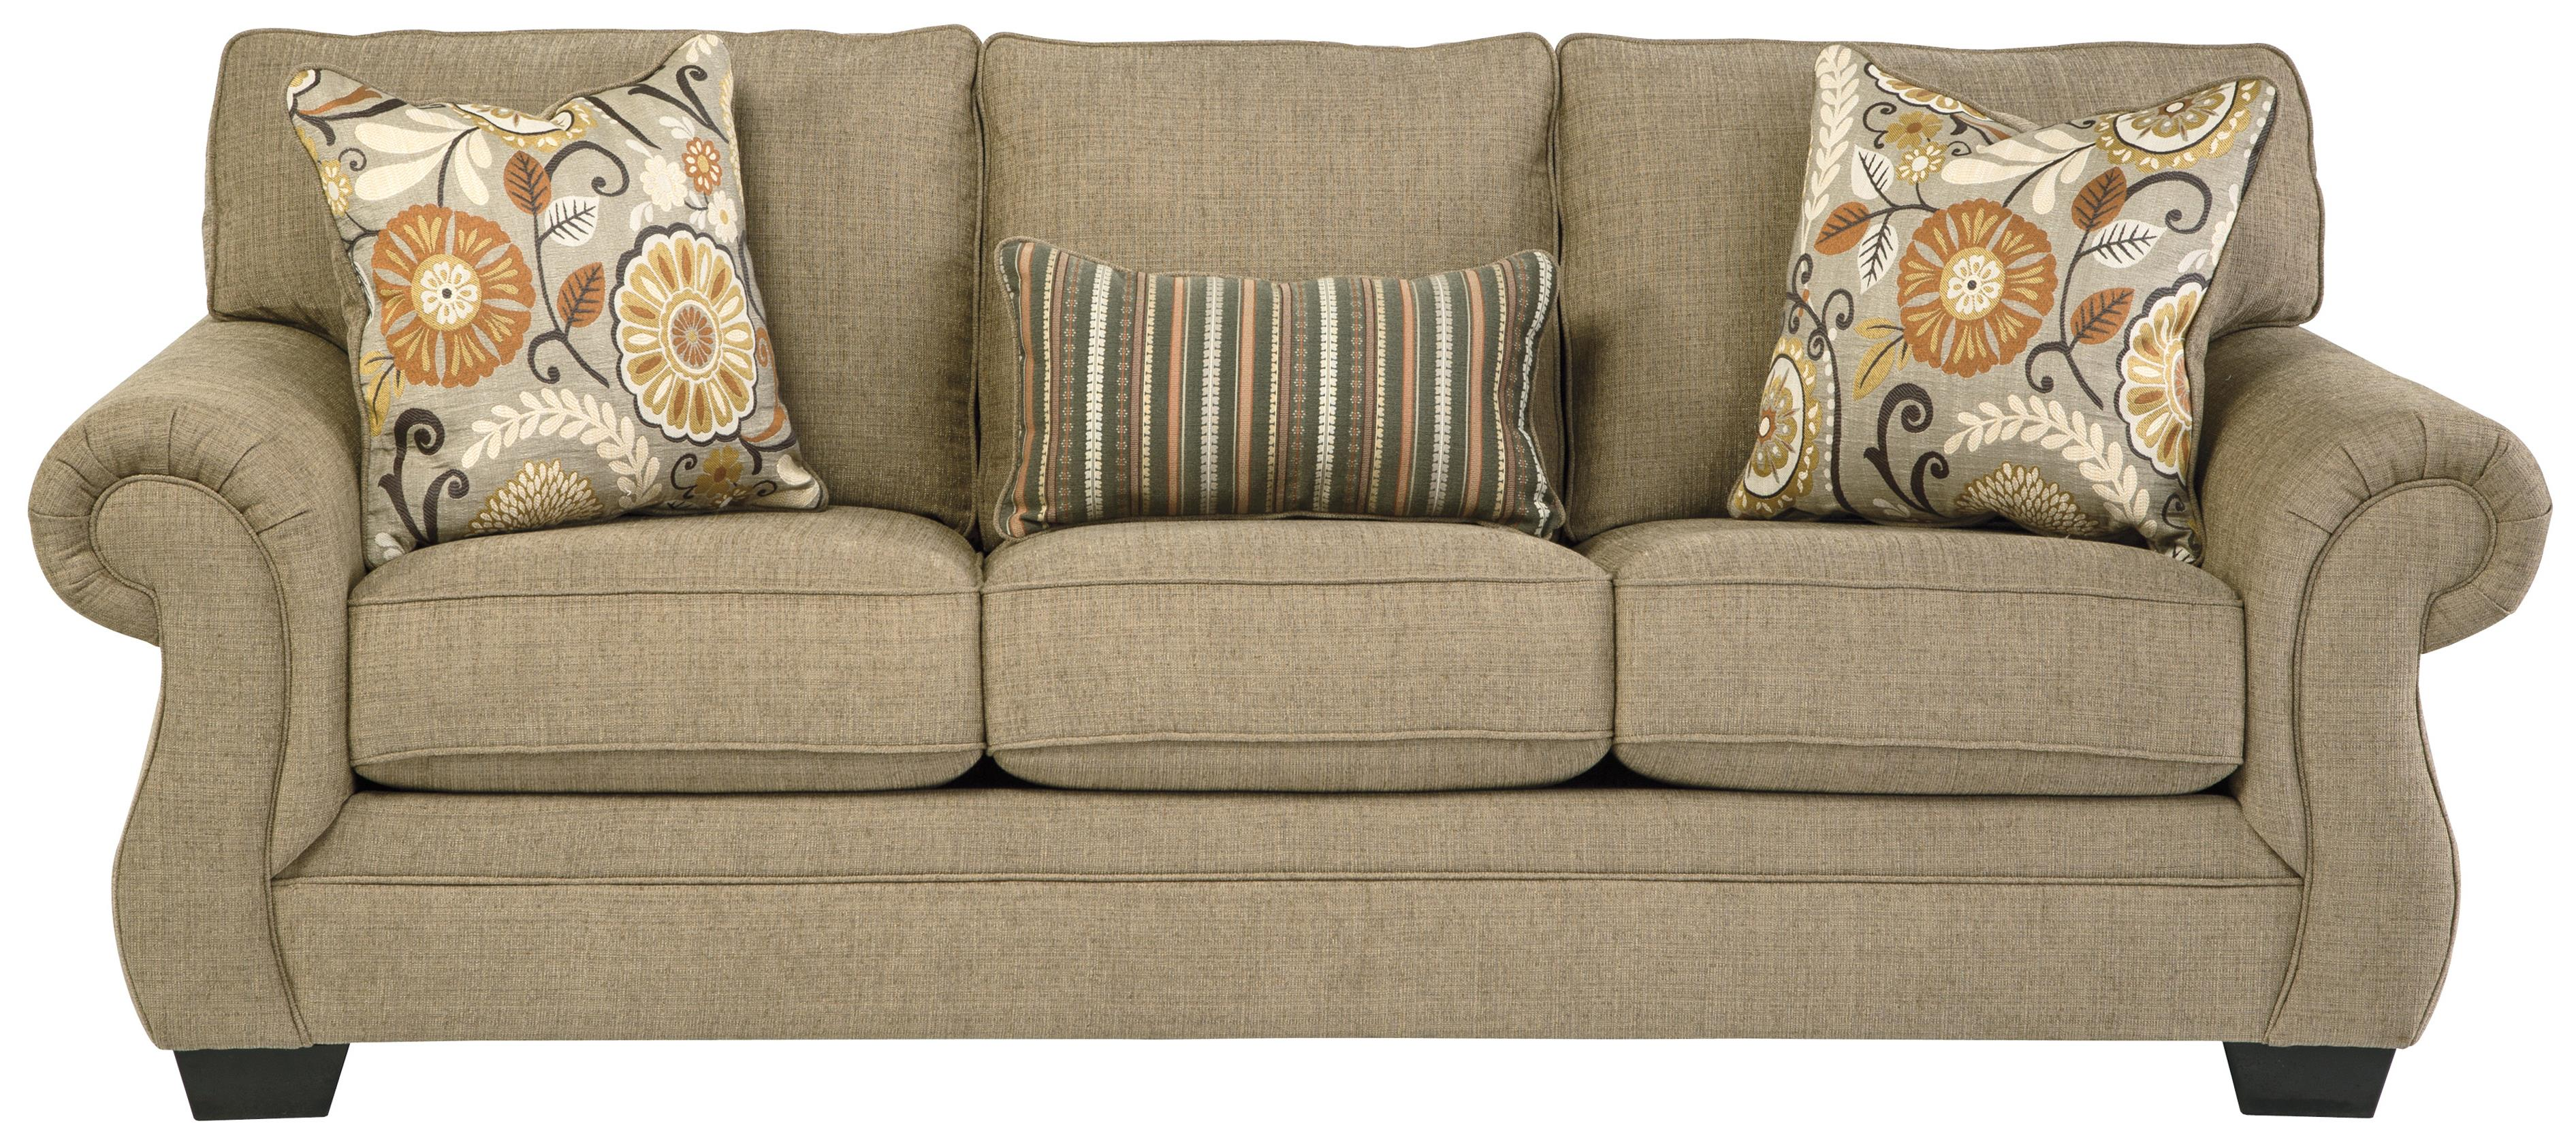 Benchcraft Tailya Transitional Sofa With Coil Seating Michael 39 S Furniture Warehouse Sofas